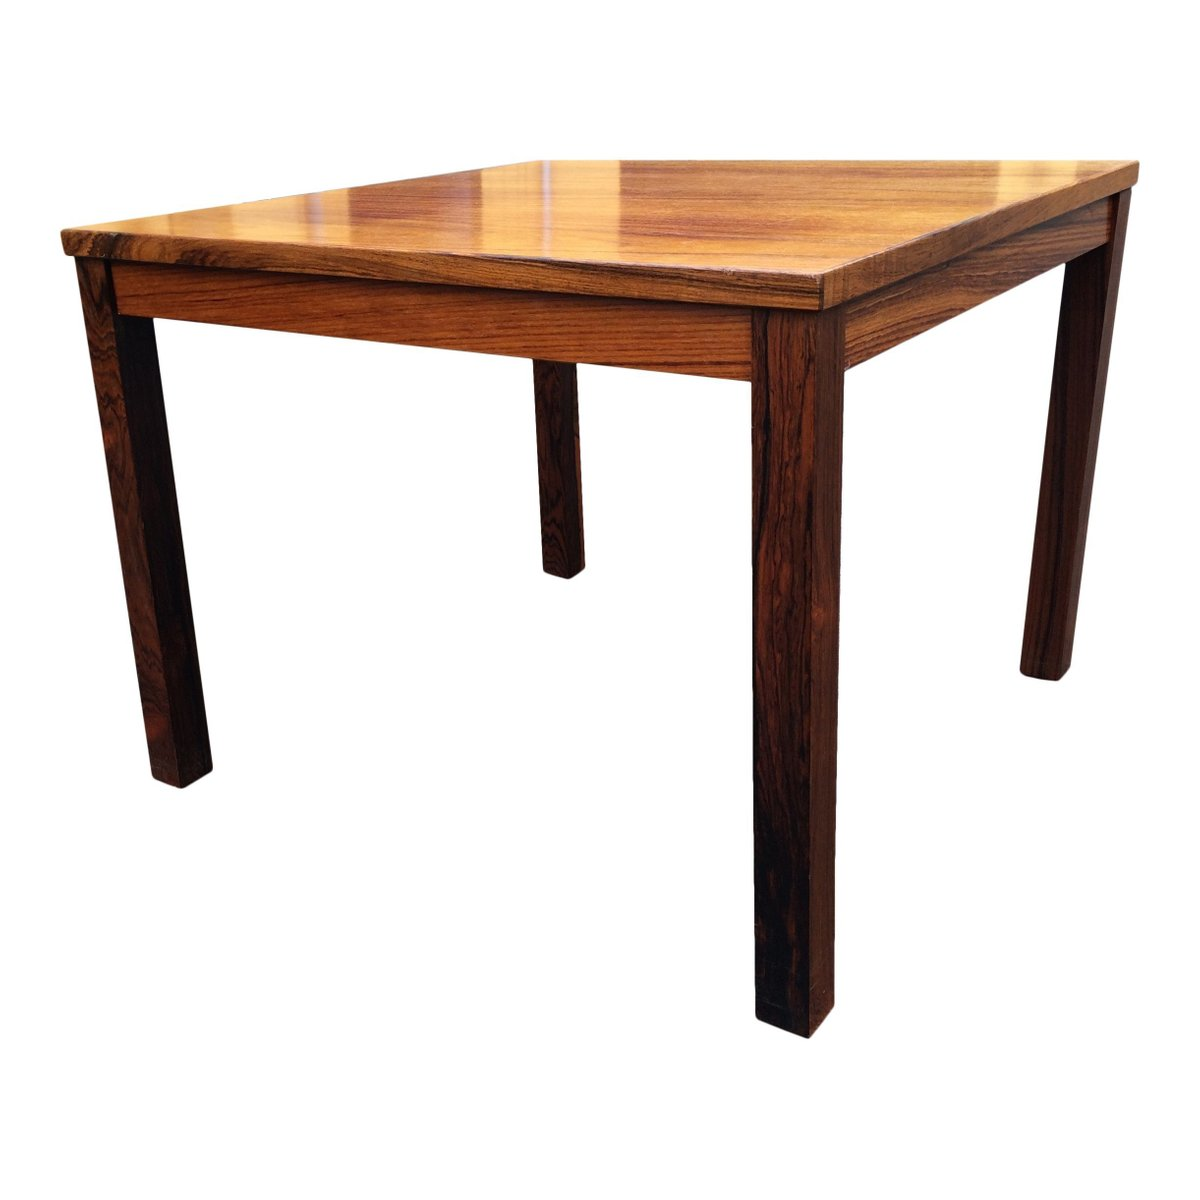 Delightful Danish Rosewood Coffee Table